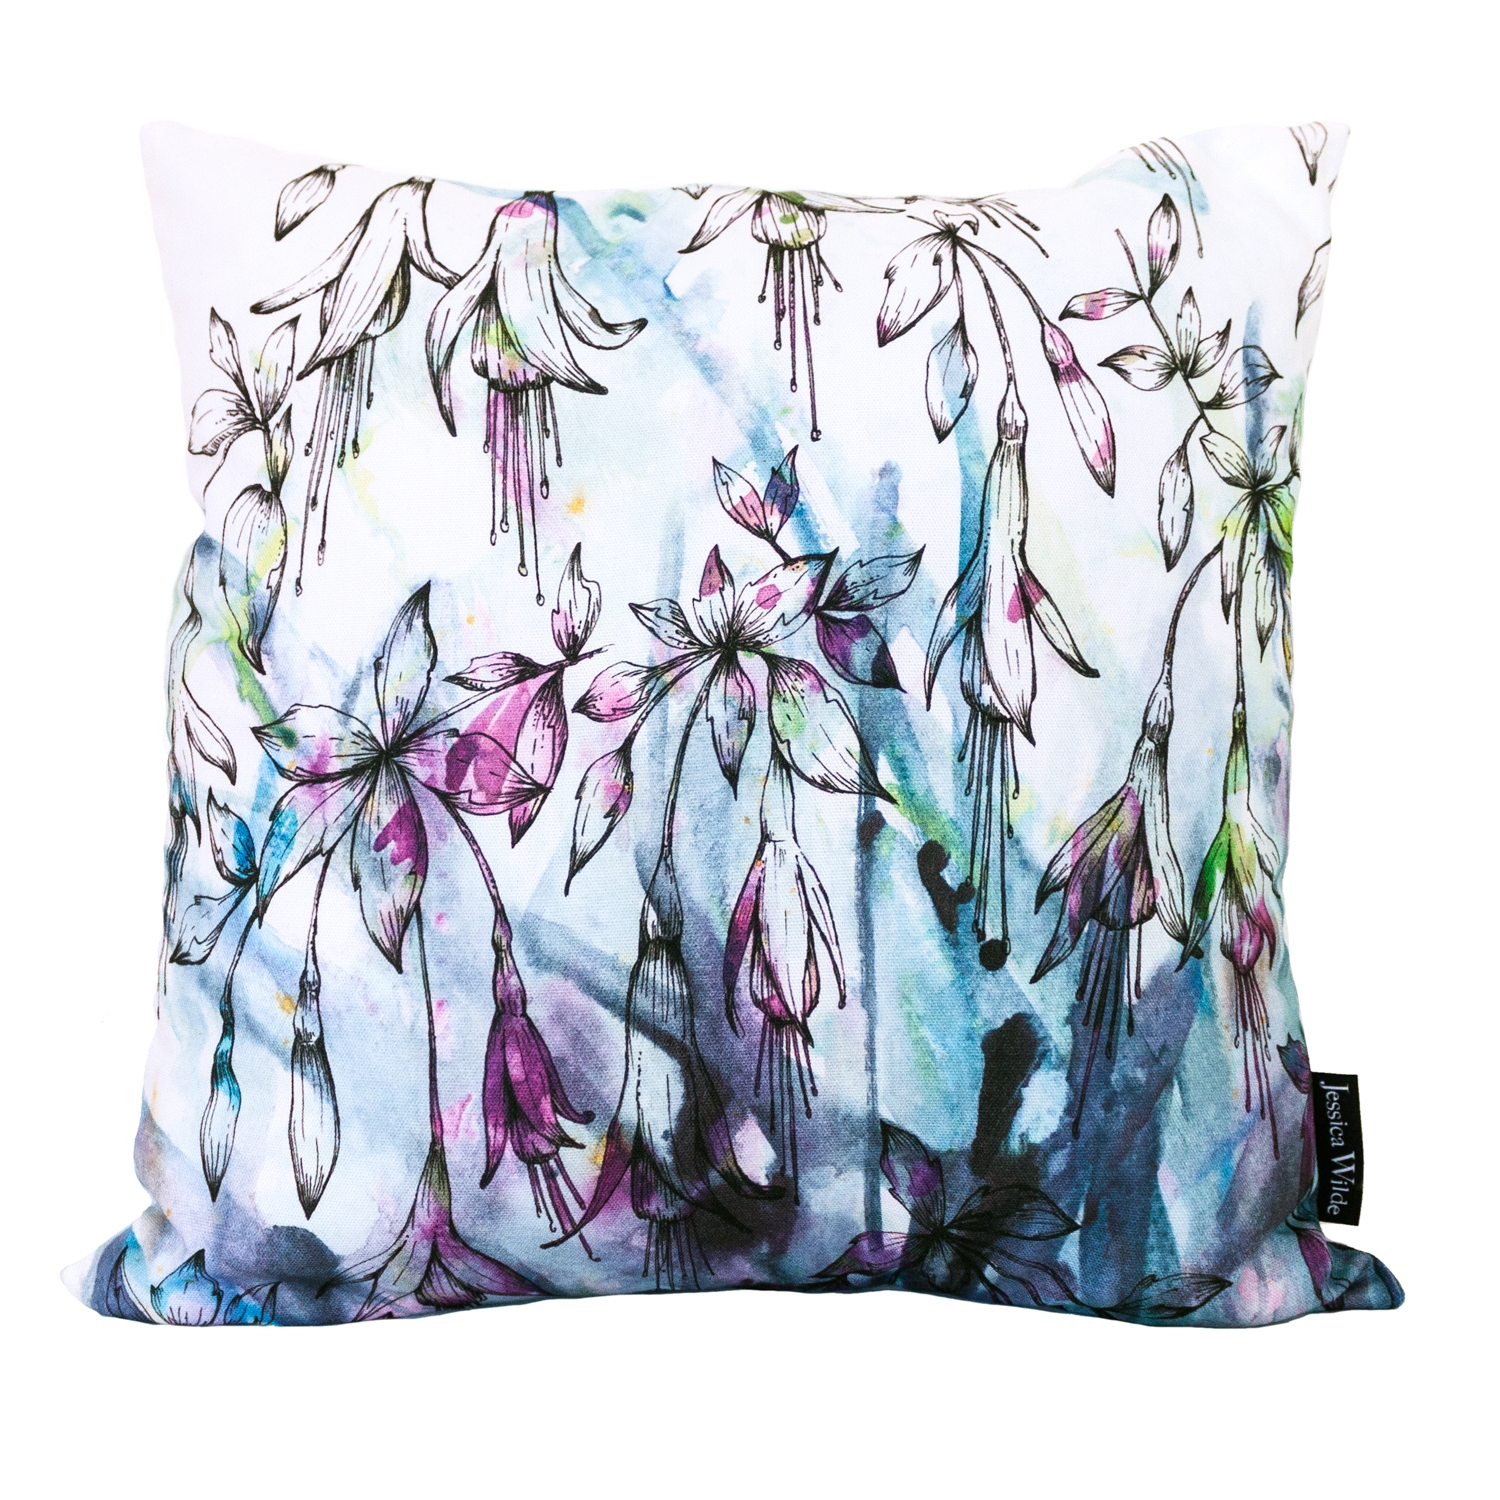 Fuchsia Floral Throw Cushion, a vibrant botanical pattern featuring hand drawn fuchsias layered with watercolour. Made in the UK   Jessica Wilde Design ©